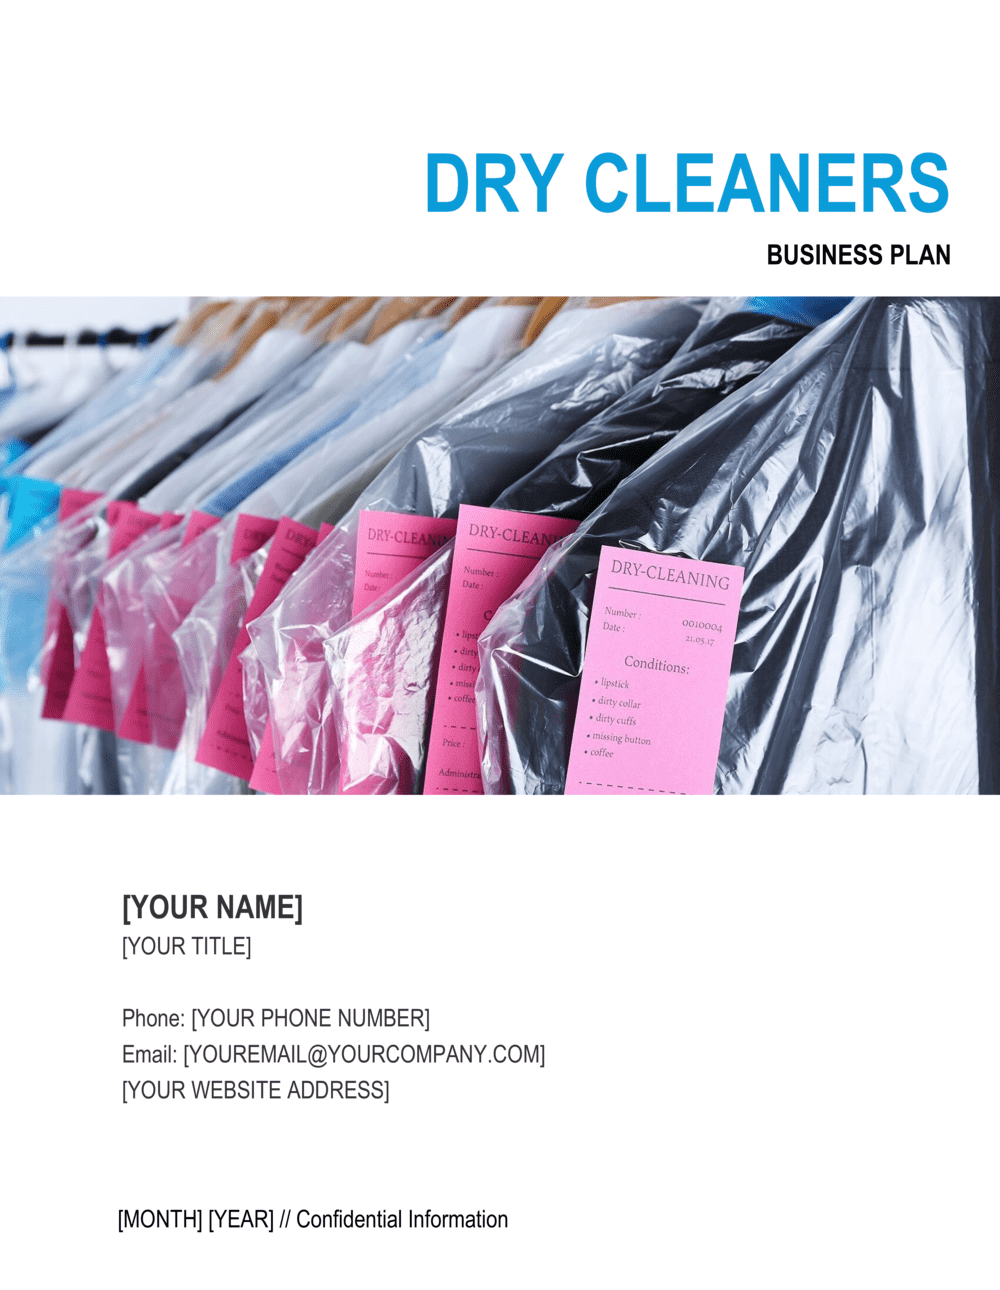 Business-in-a-Box's Dry Cleaners Business Plan Template